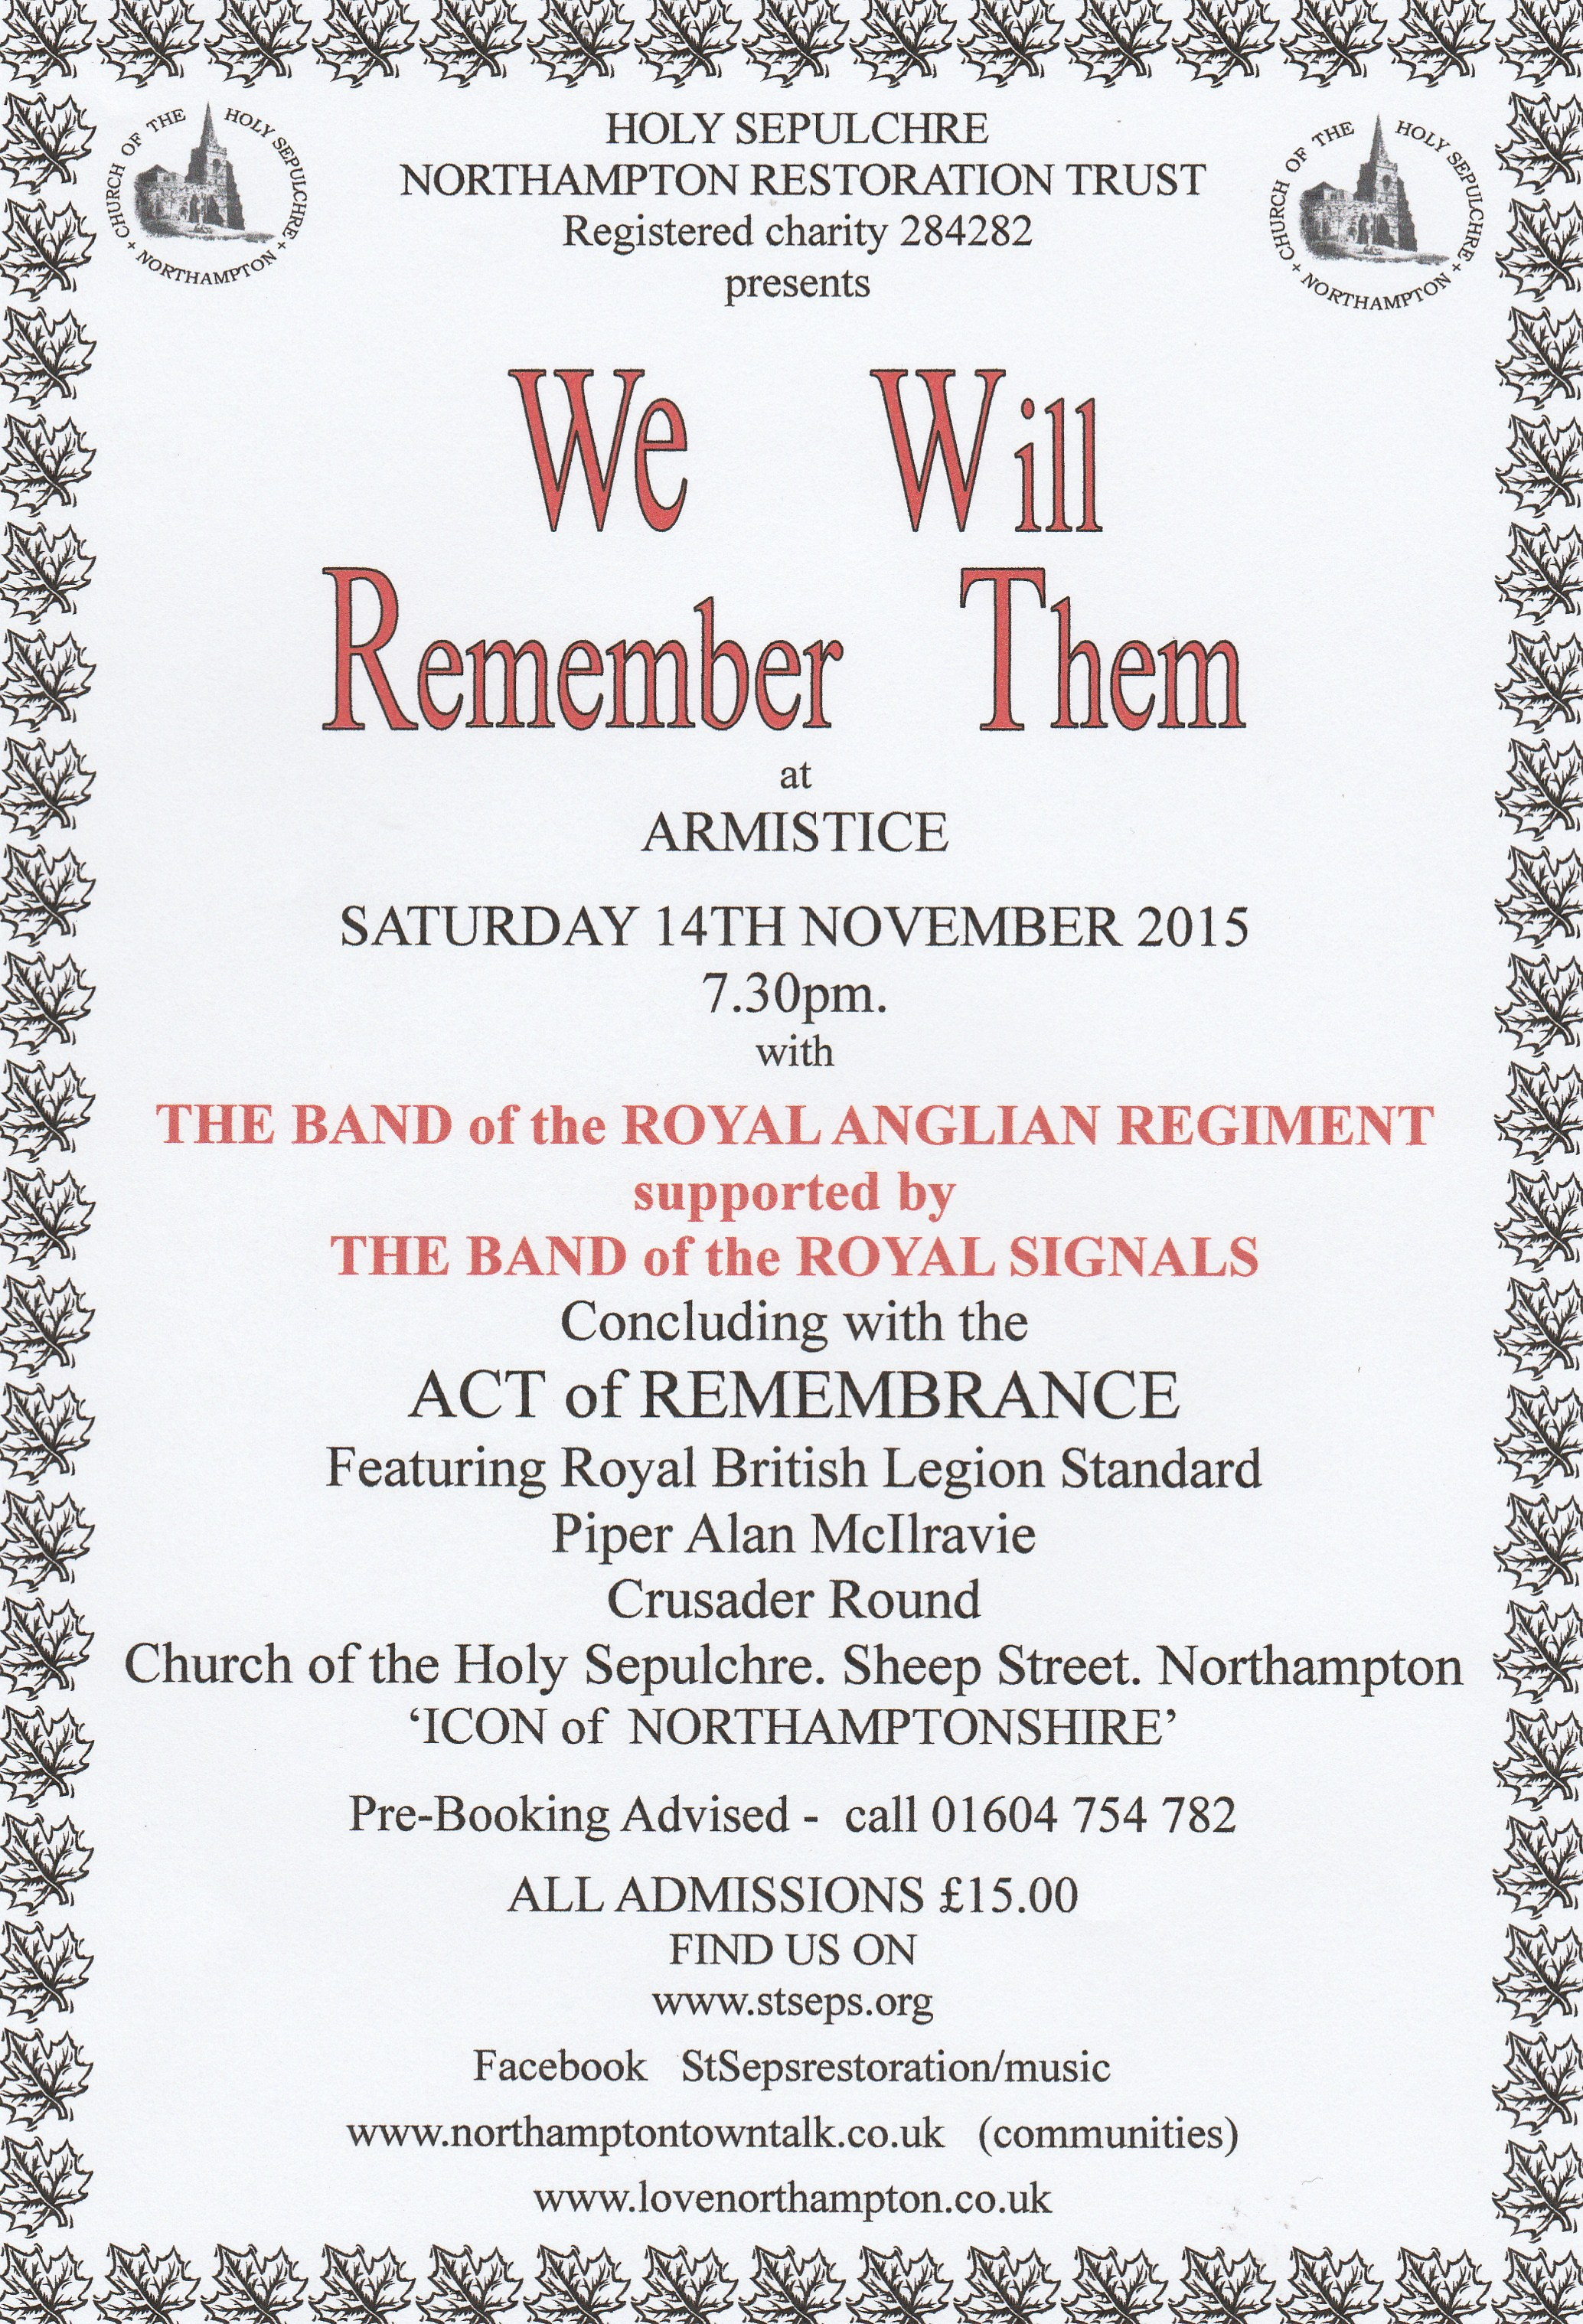 We Will Remember Them at Armistice, Hosted by the Church of the Holy Sepulchre Northampton.  Sunday 14th November 2015 at 7.30pm.  The Band of the Royal Anglian Regiment supported by the Band of the Royal Signals are performing.  Concludes with an act of remembrance  PreBooking advised - Call 01604754782  All Admissions £15  Web: www.stseps.org, Facebook: StSepsRestoration/music